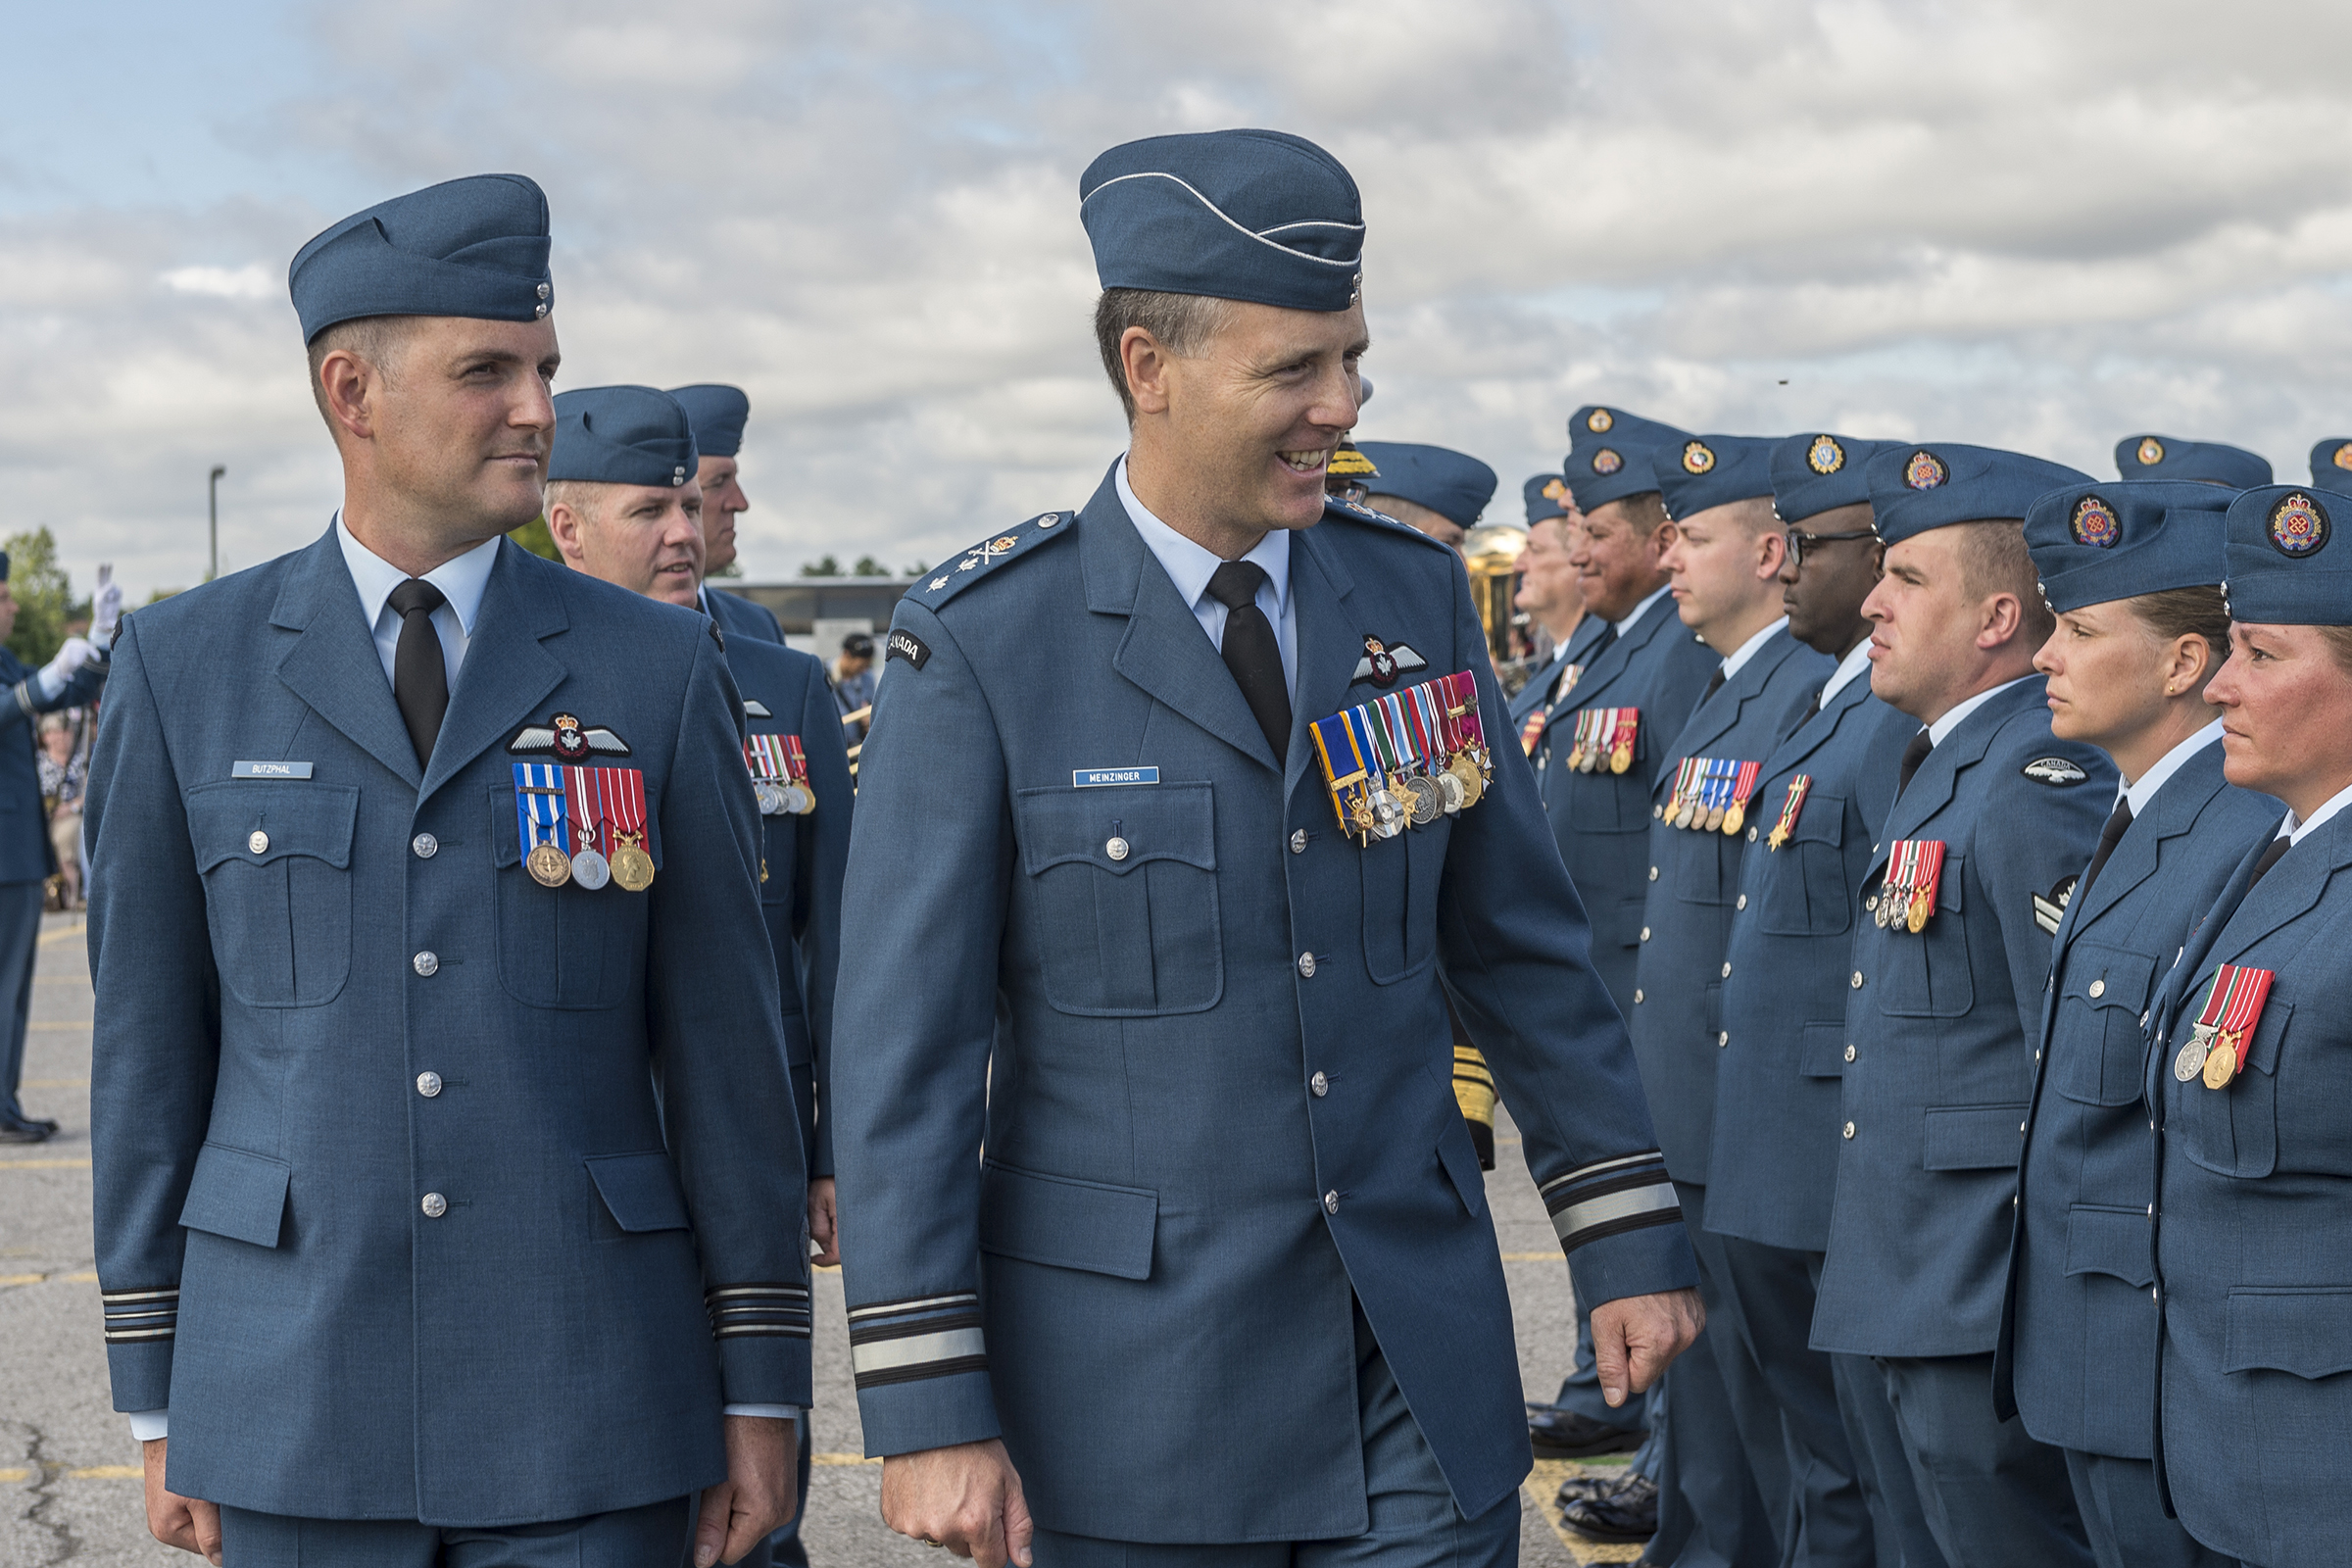 Accompanied by the parade commander, Major Peter Butzphal, Major-General Al Meinzinger, deputy commander of the Royal Canadian Air Force, inspects the airmen and airwomen on parade during the national Battle of Britain ceremony held September 18, 2016, at the Canada Aviation and Space Museum in Ottawa. On May 4, 2018, now-Lieutenant-General Meinzinger took command of the Royal Canadian Air Force. PHOTO: Corporal Alana Morin, FA03-2016-0032-015